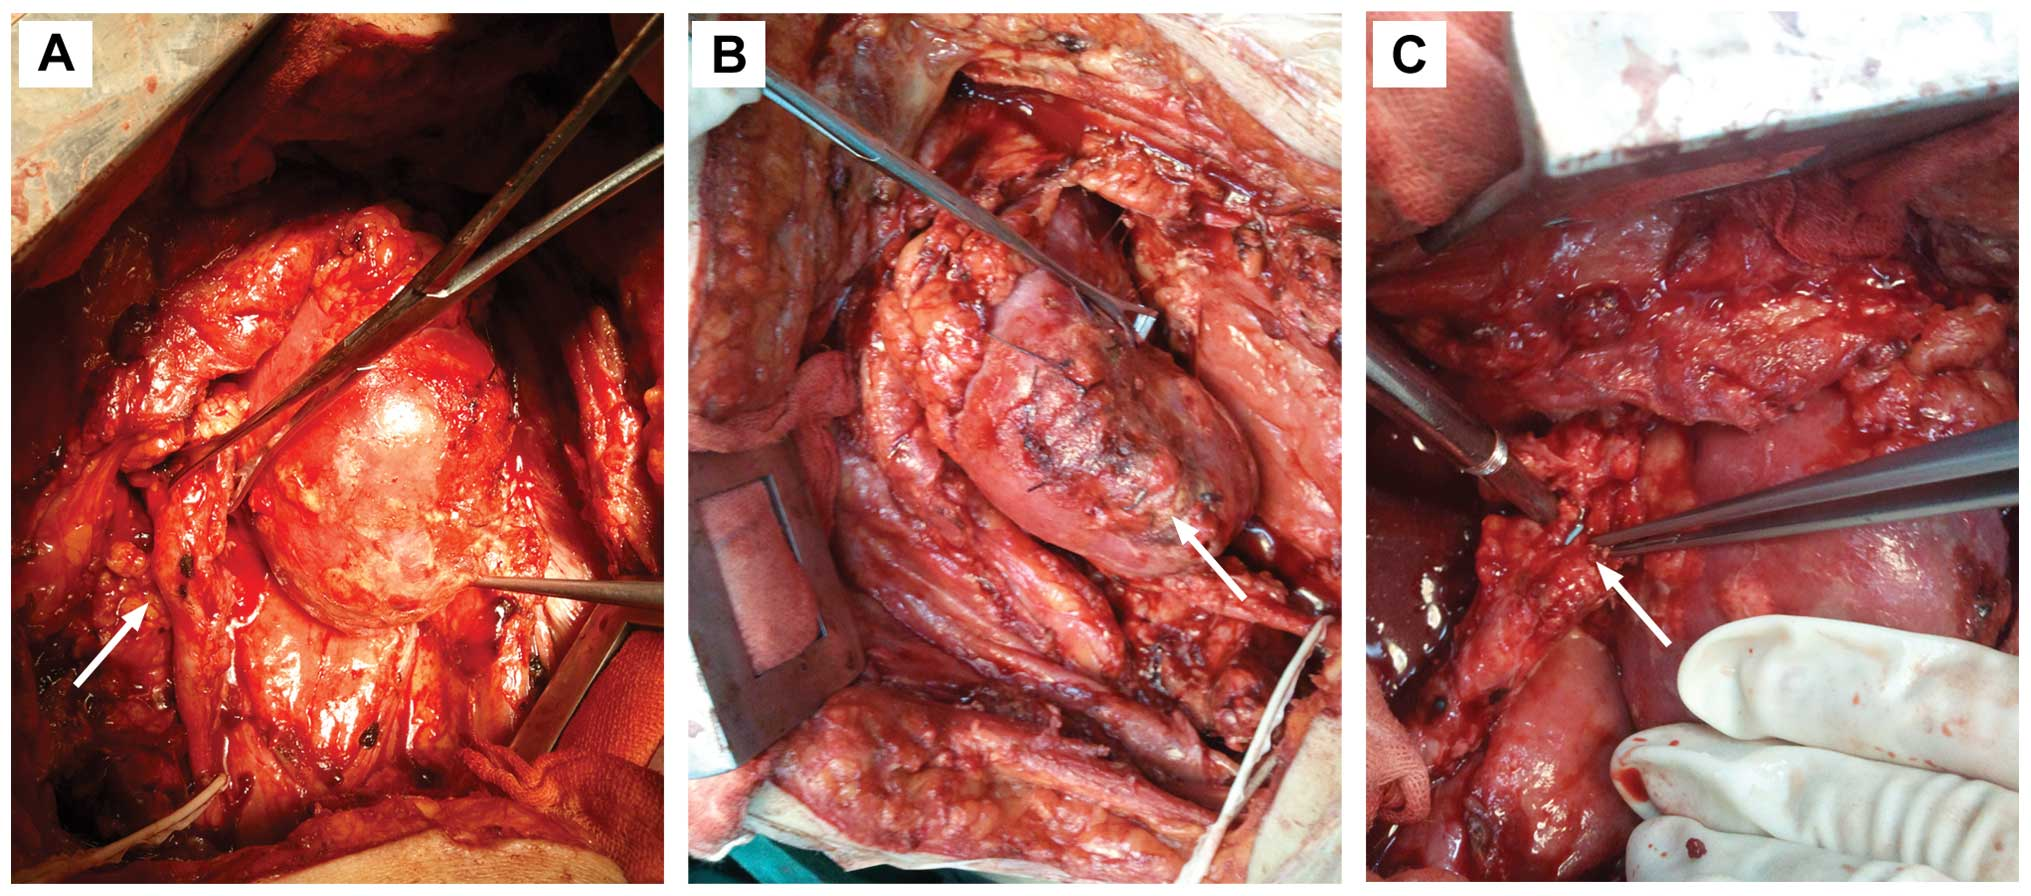 Ureteral Obstruction And Urinary Fistula Due To Fibrin Glue After